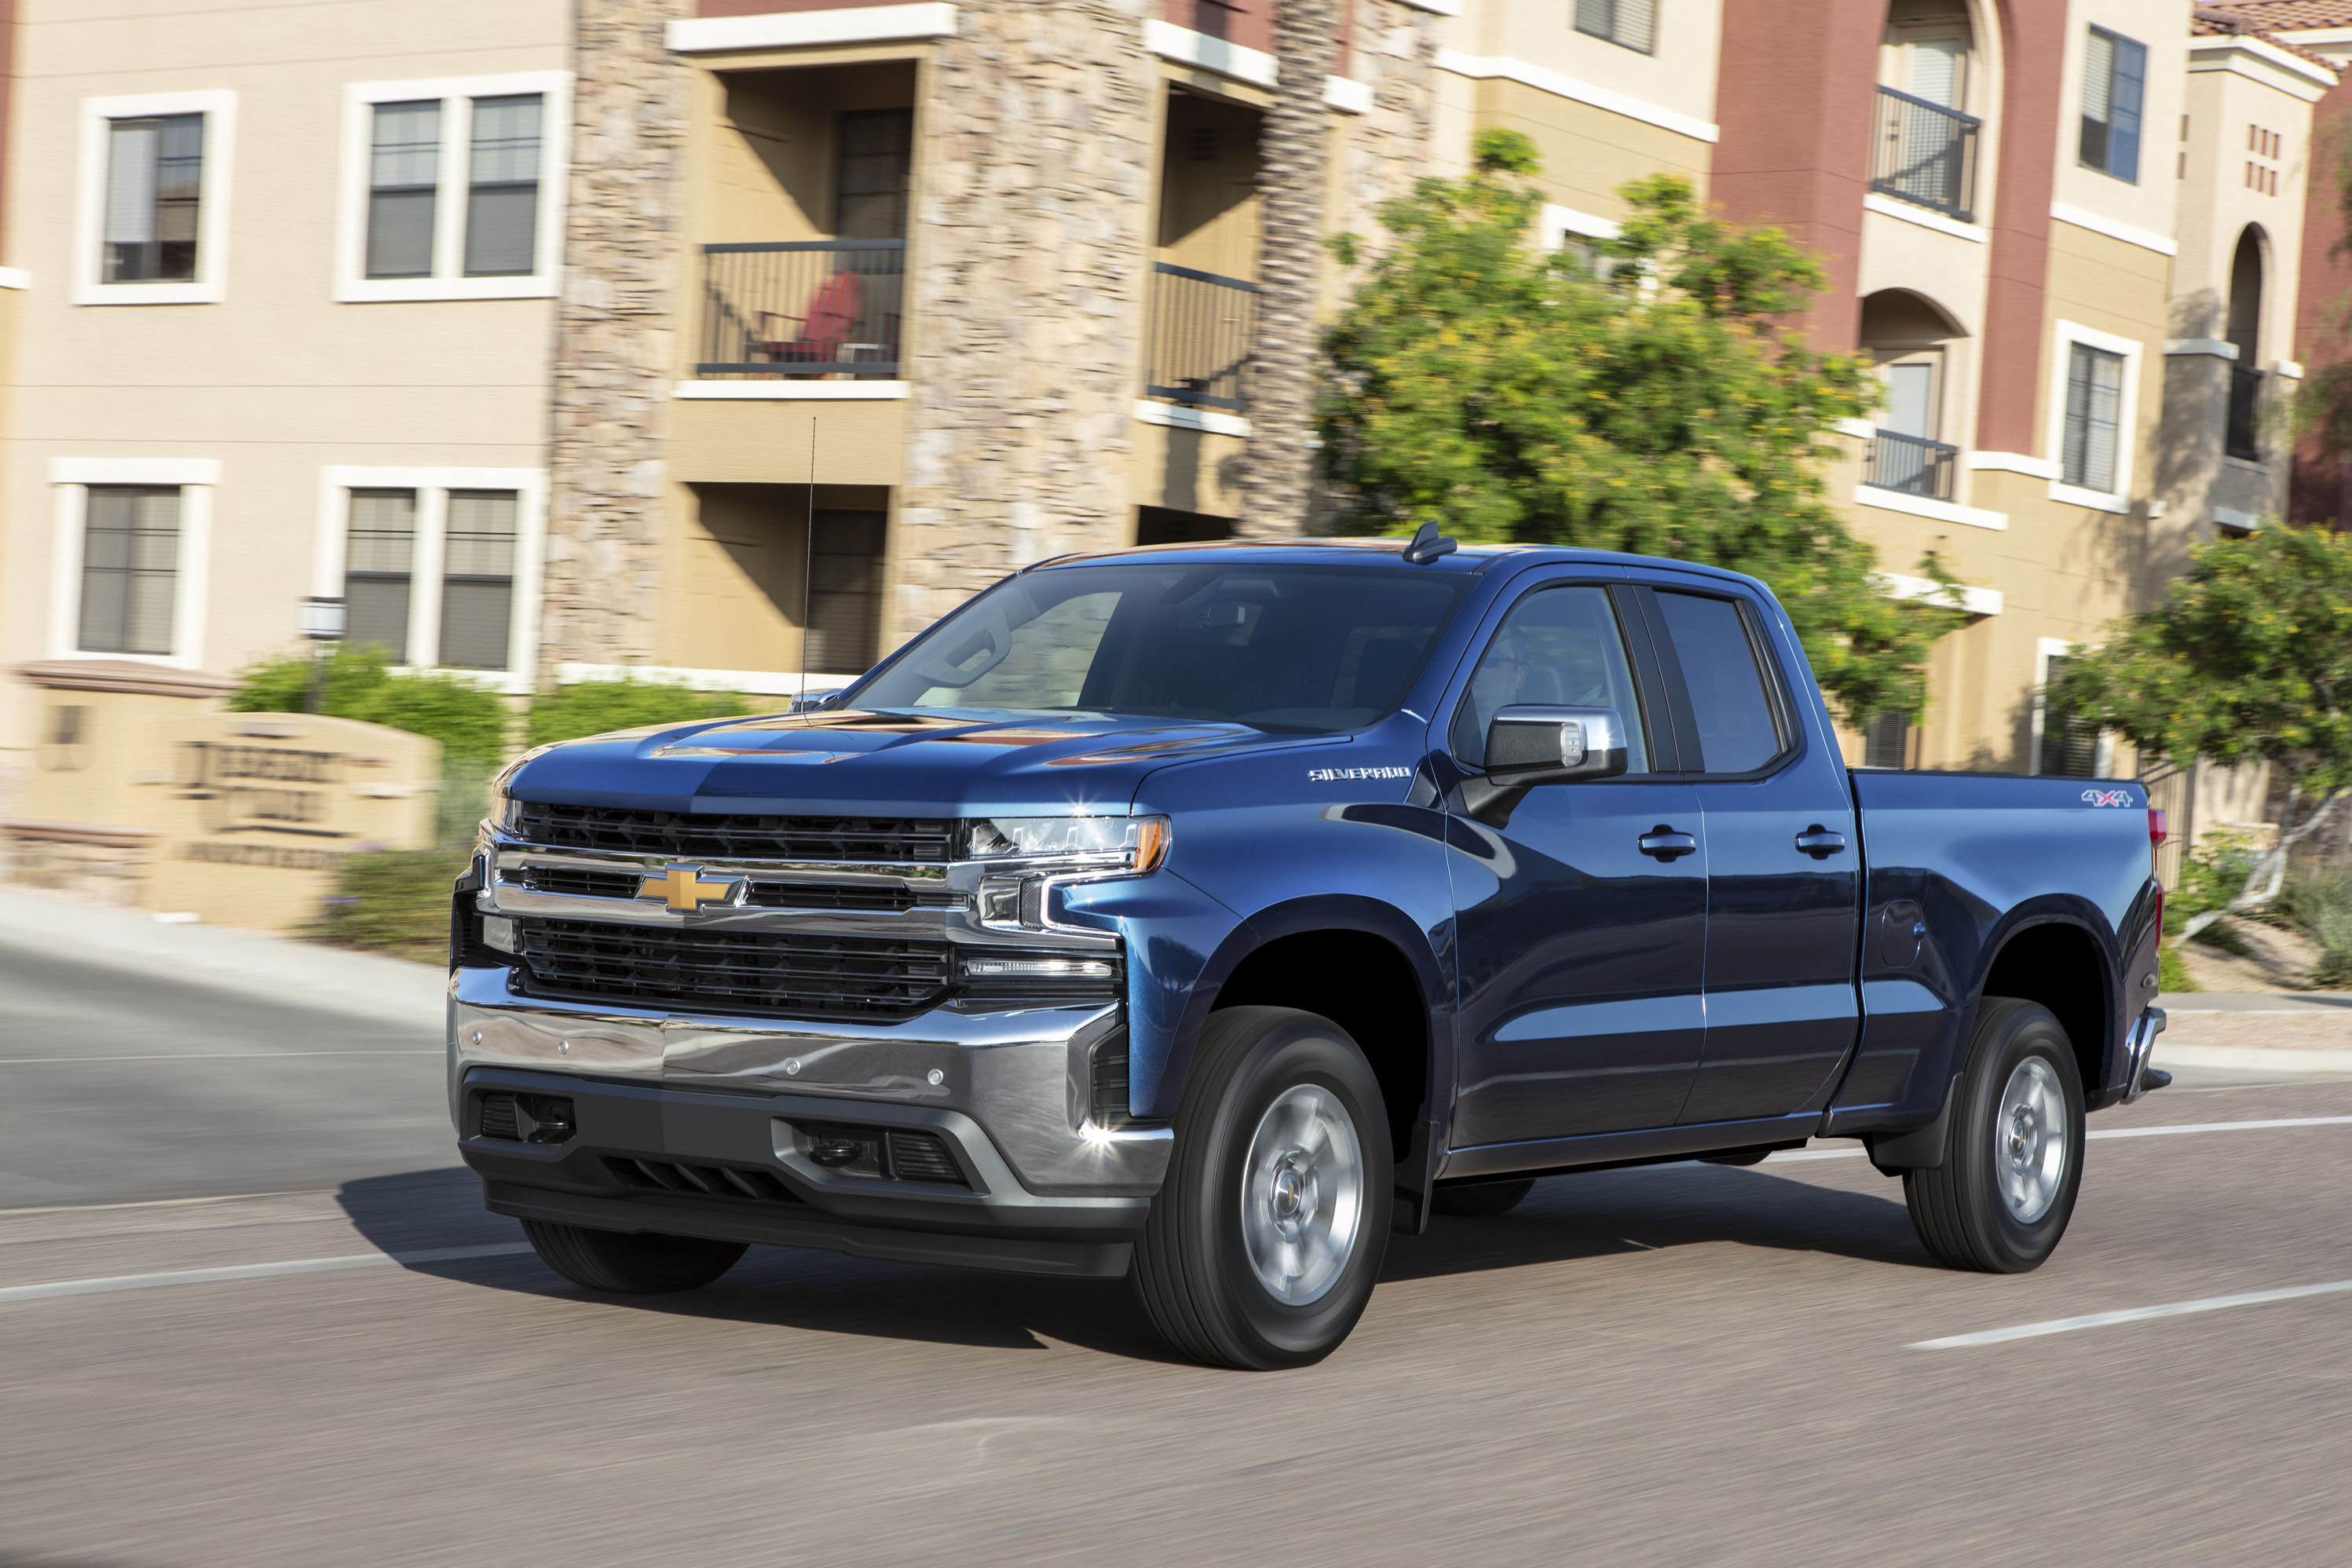 Gm Confirms Plans For An Electric Pickup Truck